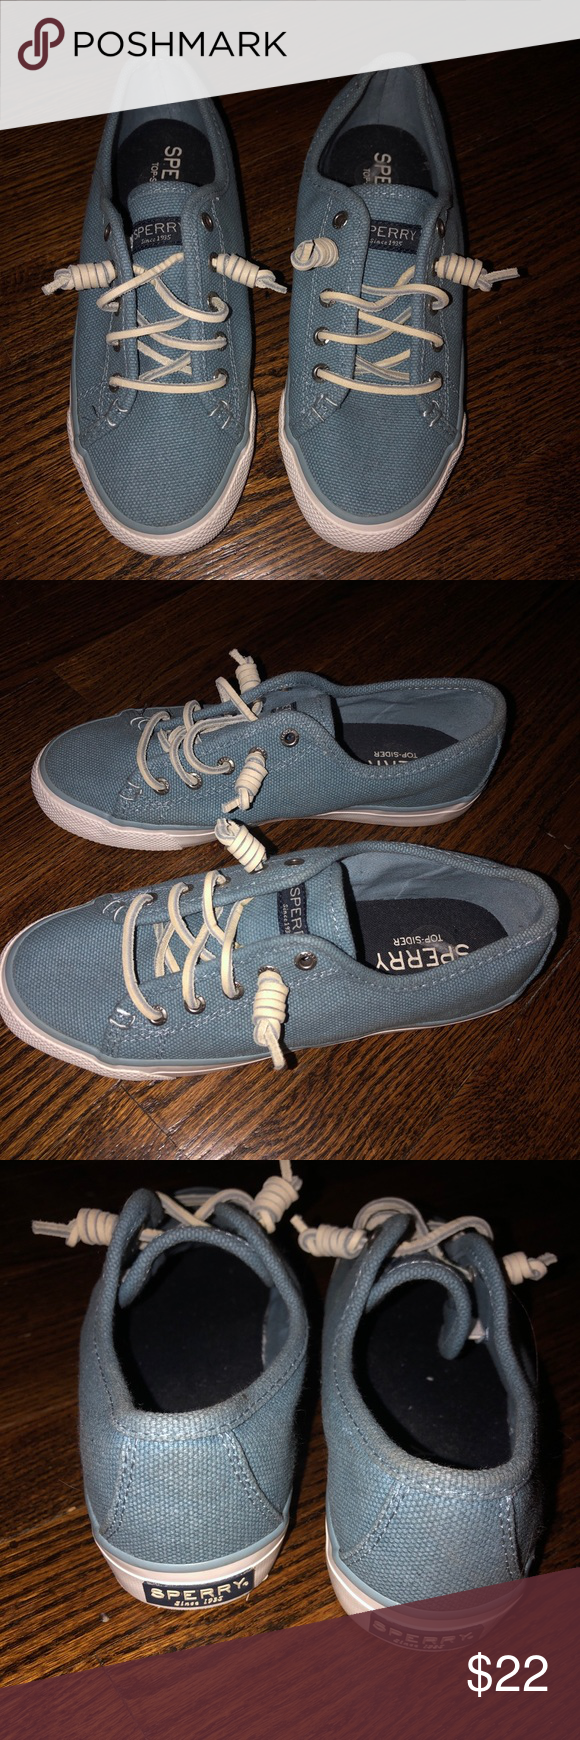 Never worn!!! Women's sperry's 6.5! Never worn women's sperry's size 6.5! Sperry Shoes Sneakers #myposhpicks